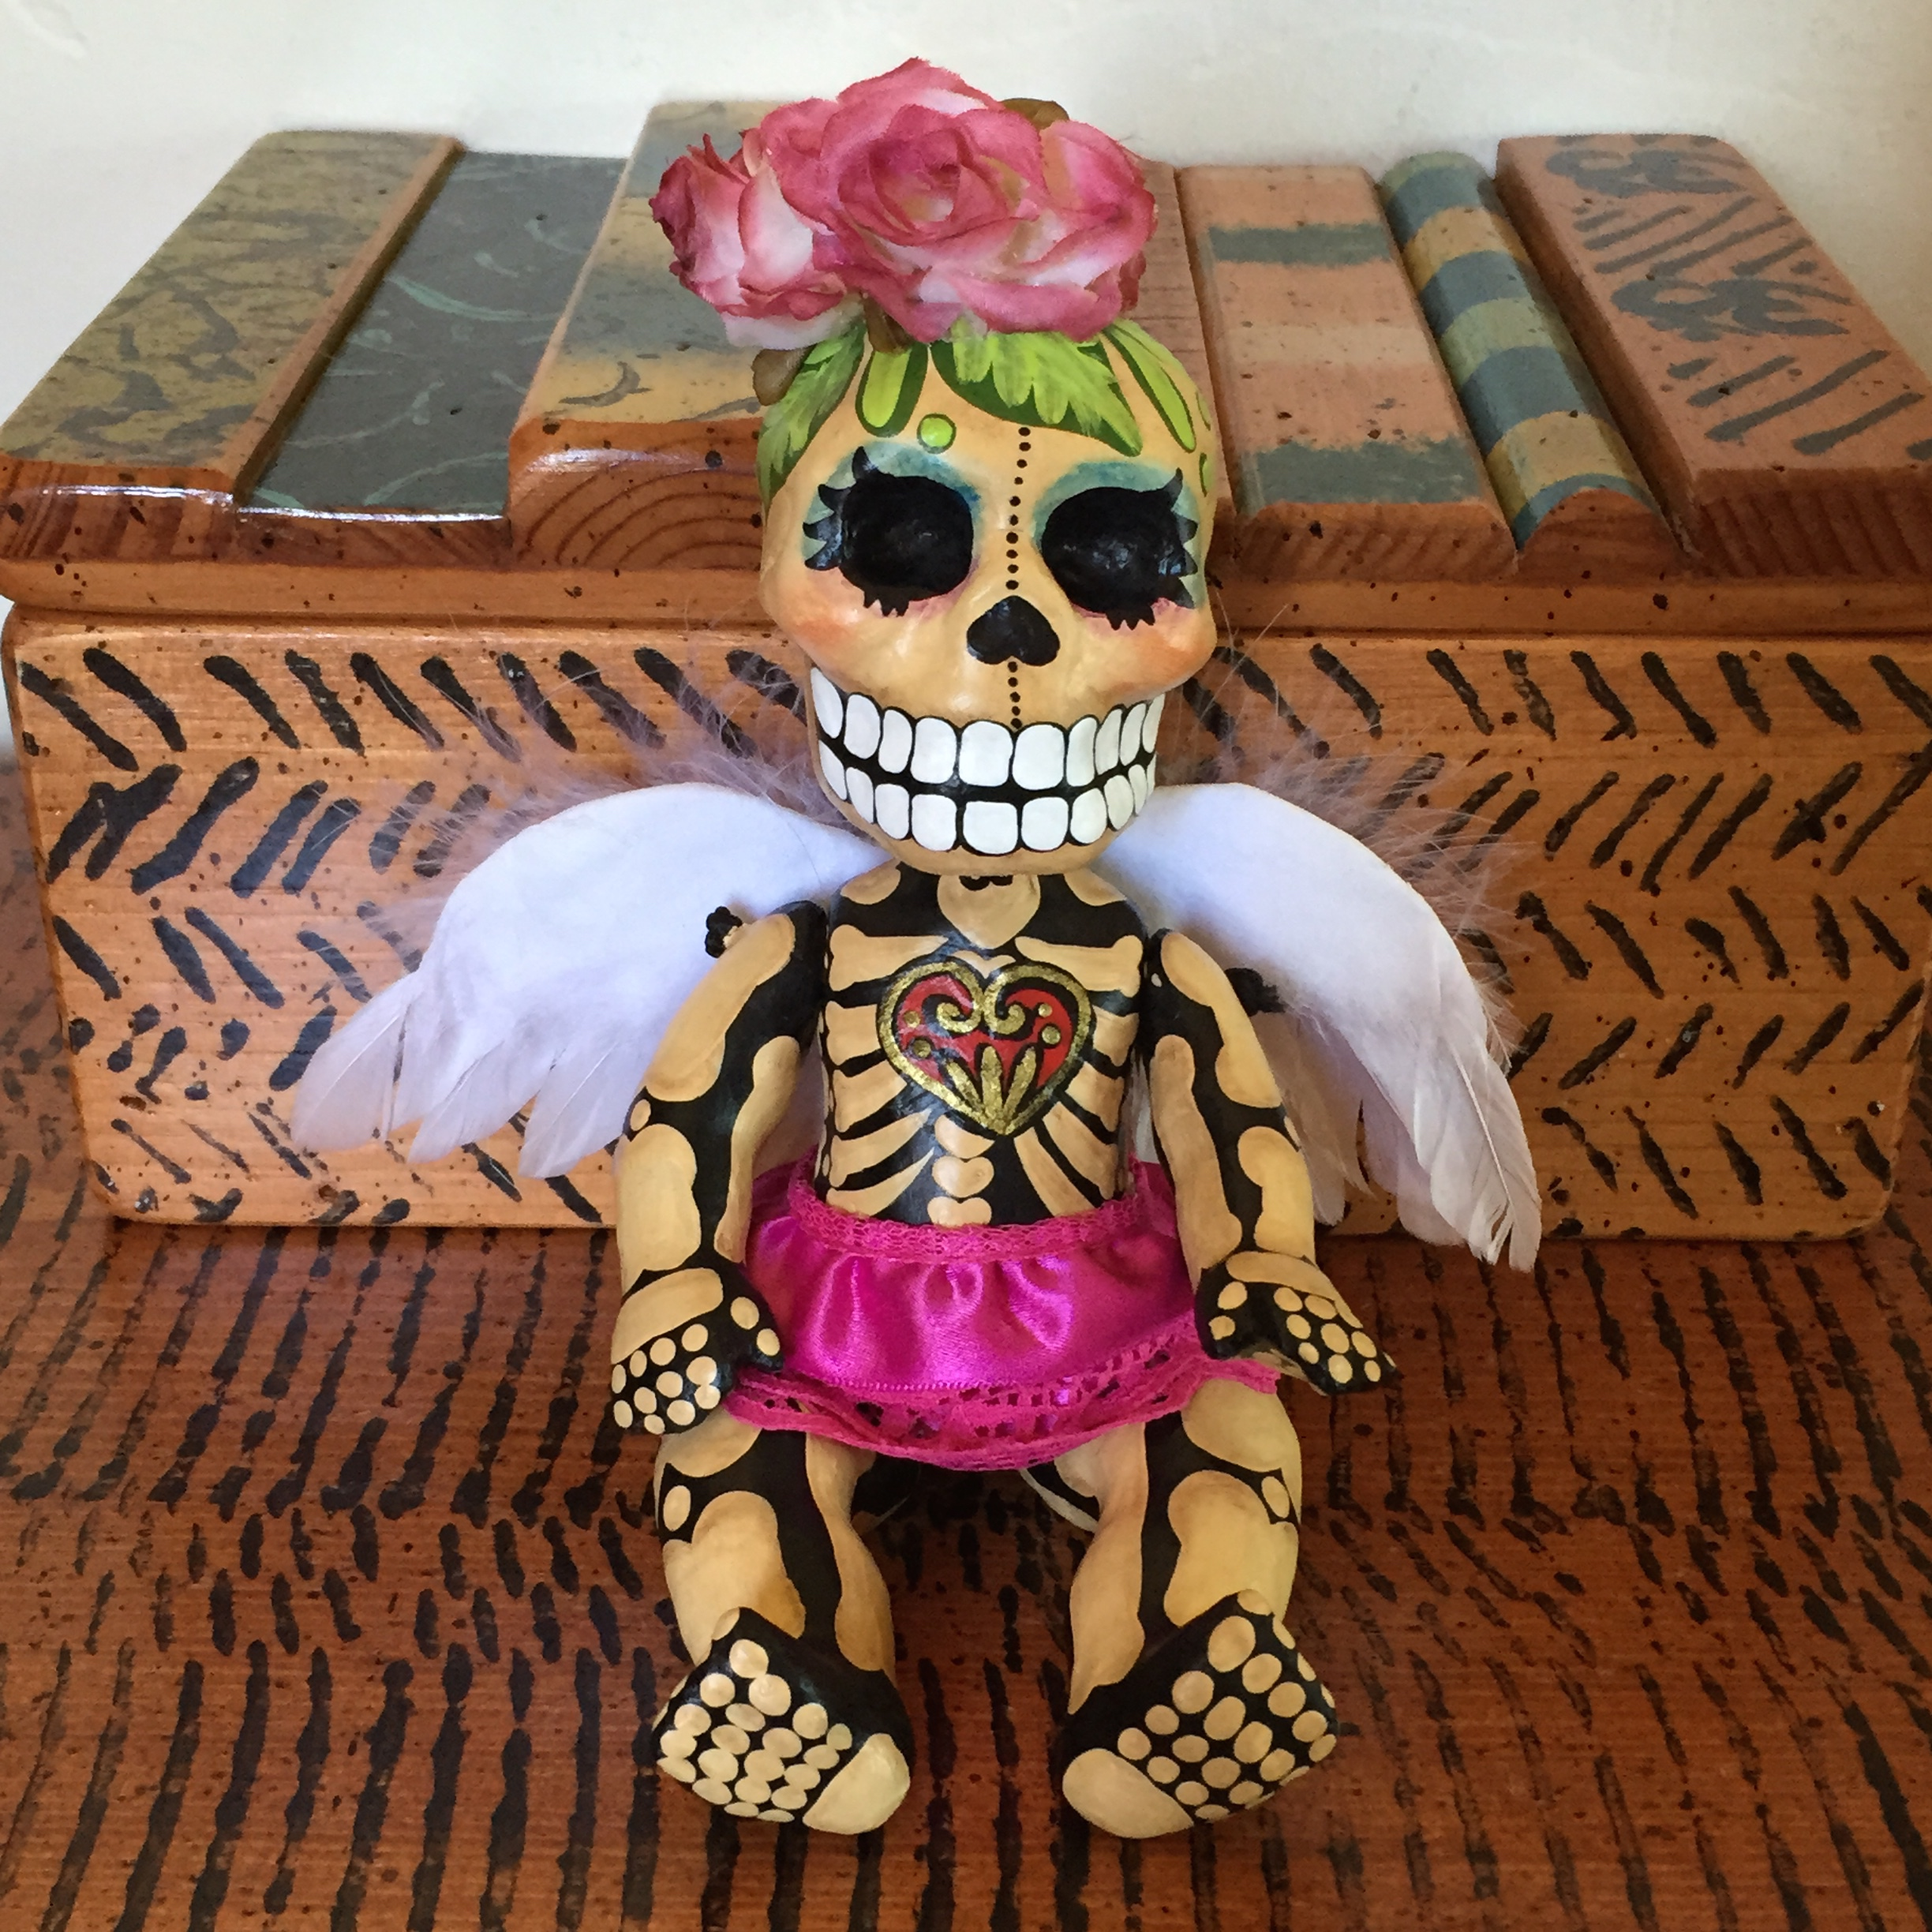 we ourselves dias de los muertos herstory my first calaca an angelita for datildeshya de los angelitos